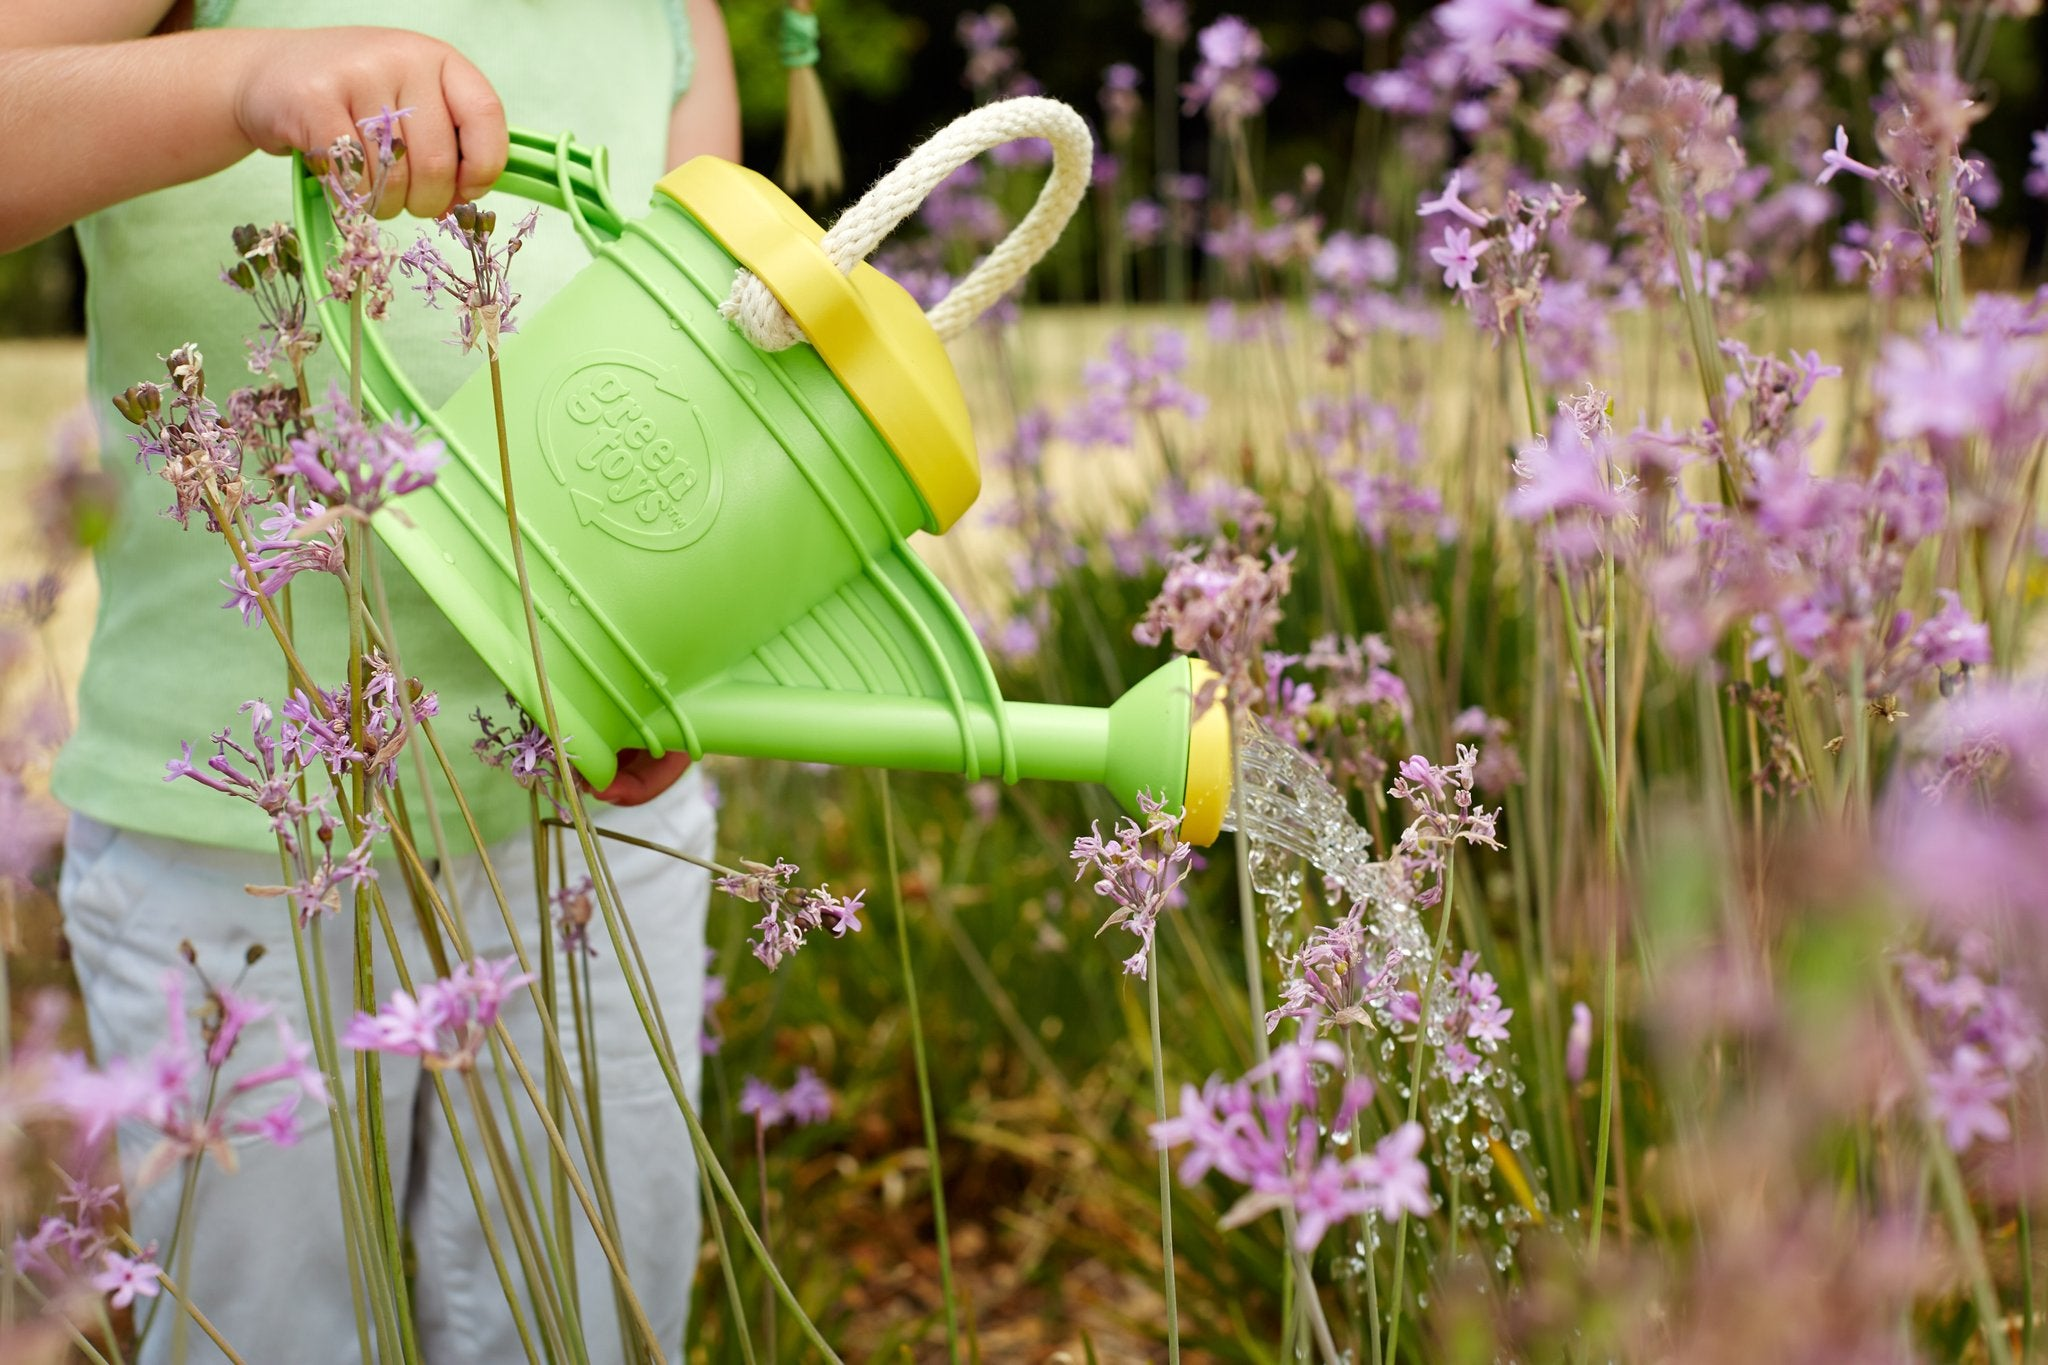 Green Toys - Garden Watering Can